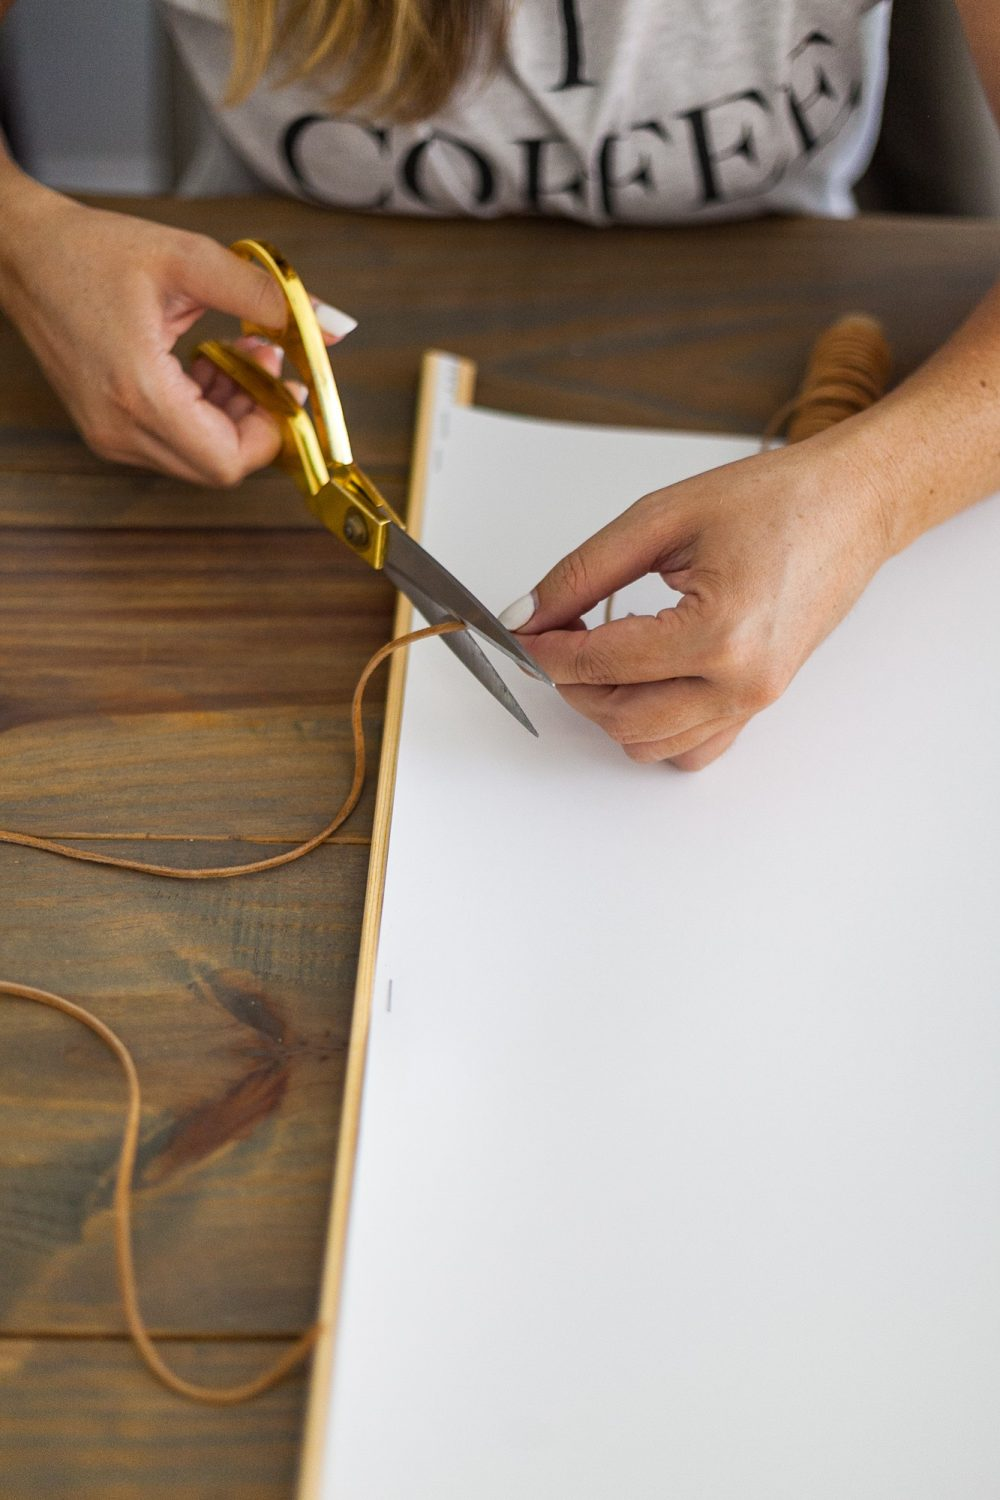 Click through for a fun, EASY DIY poster hanger tutorial. You can make your own DIY poster hanger for $3 in just a few short minutes!   DIY Poster Hanger by popular Florida DIY blog, Fresh Mommy Blog: image of a woman cutting some suede cord with a pair of gold scissors.